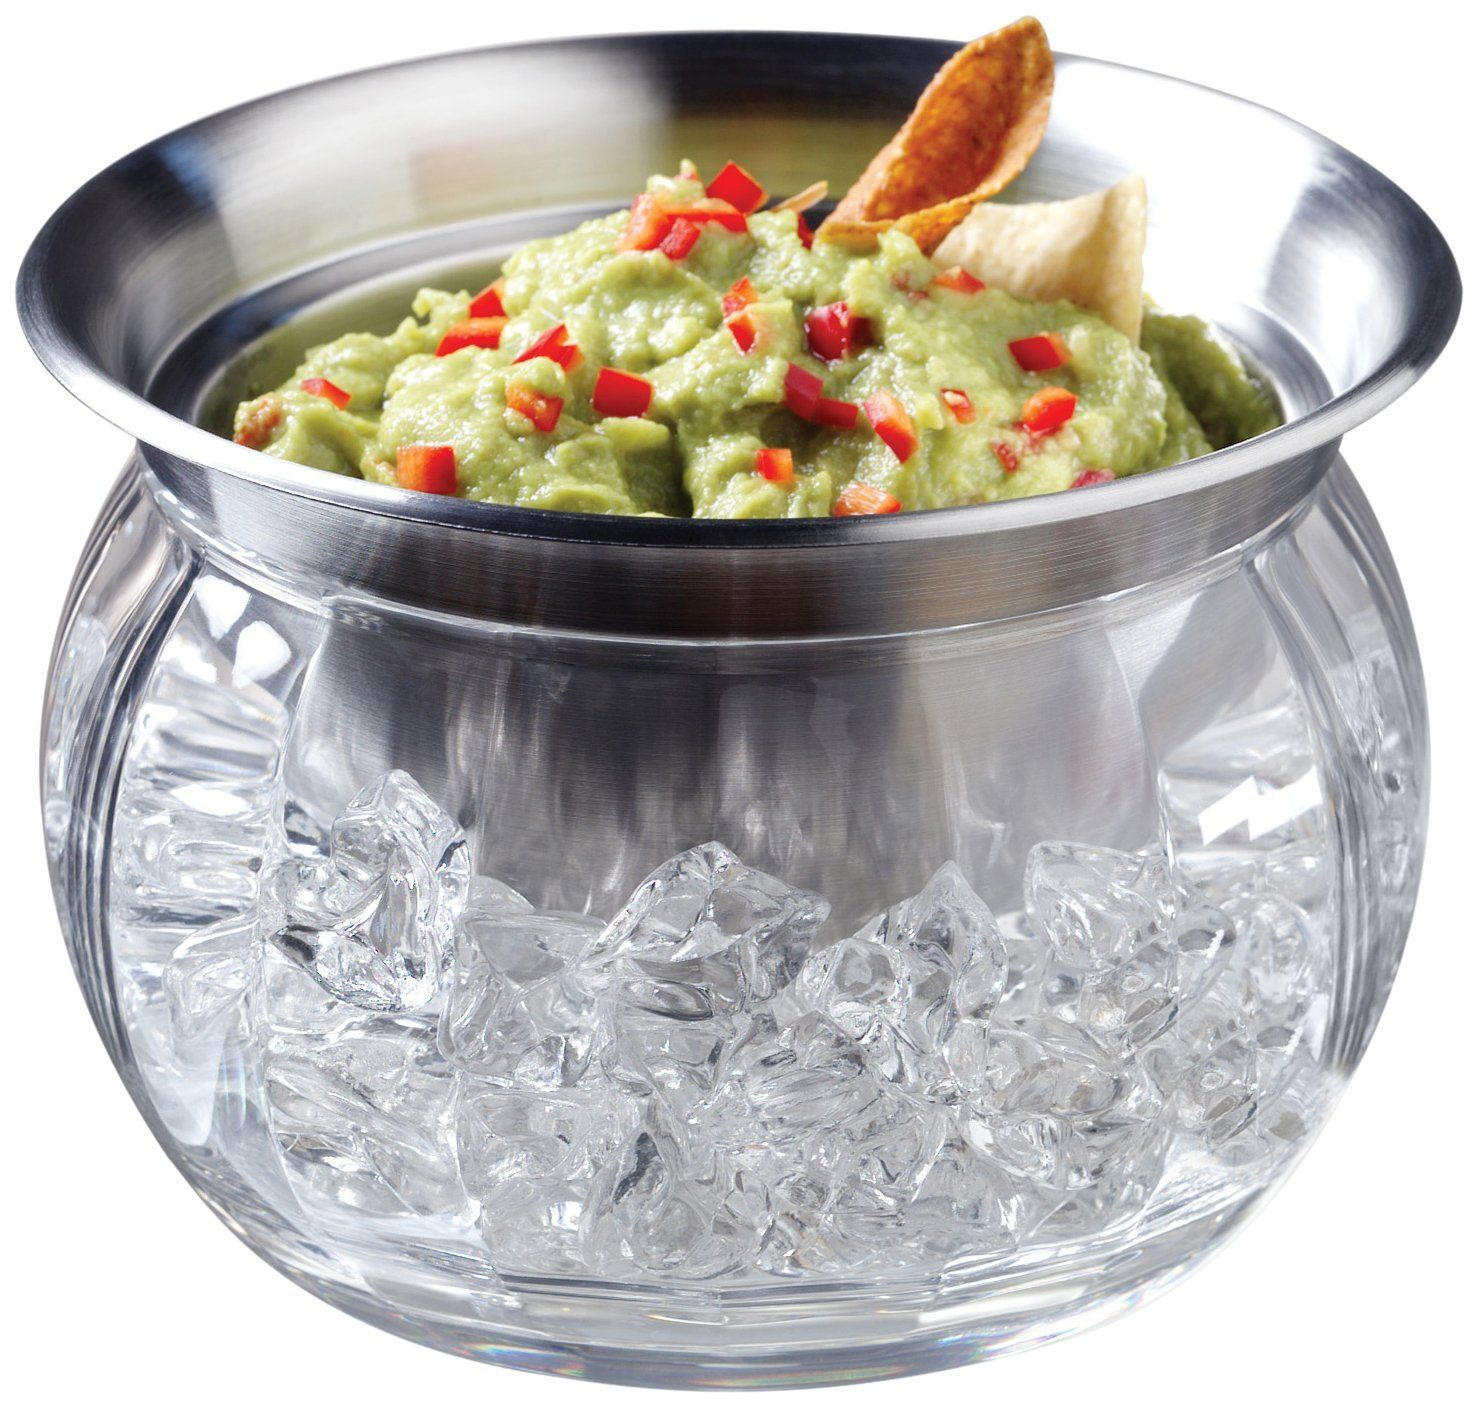 Pin By April Gerbode On Home Sweet Home Dining Ice Bowl Dip Bowl Food